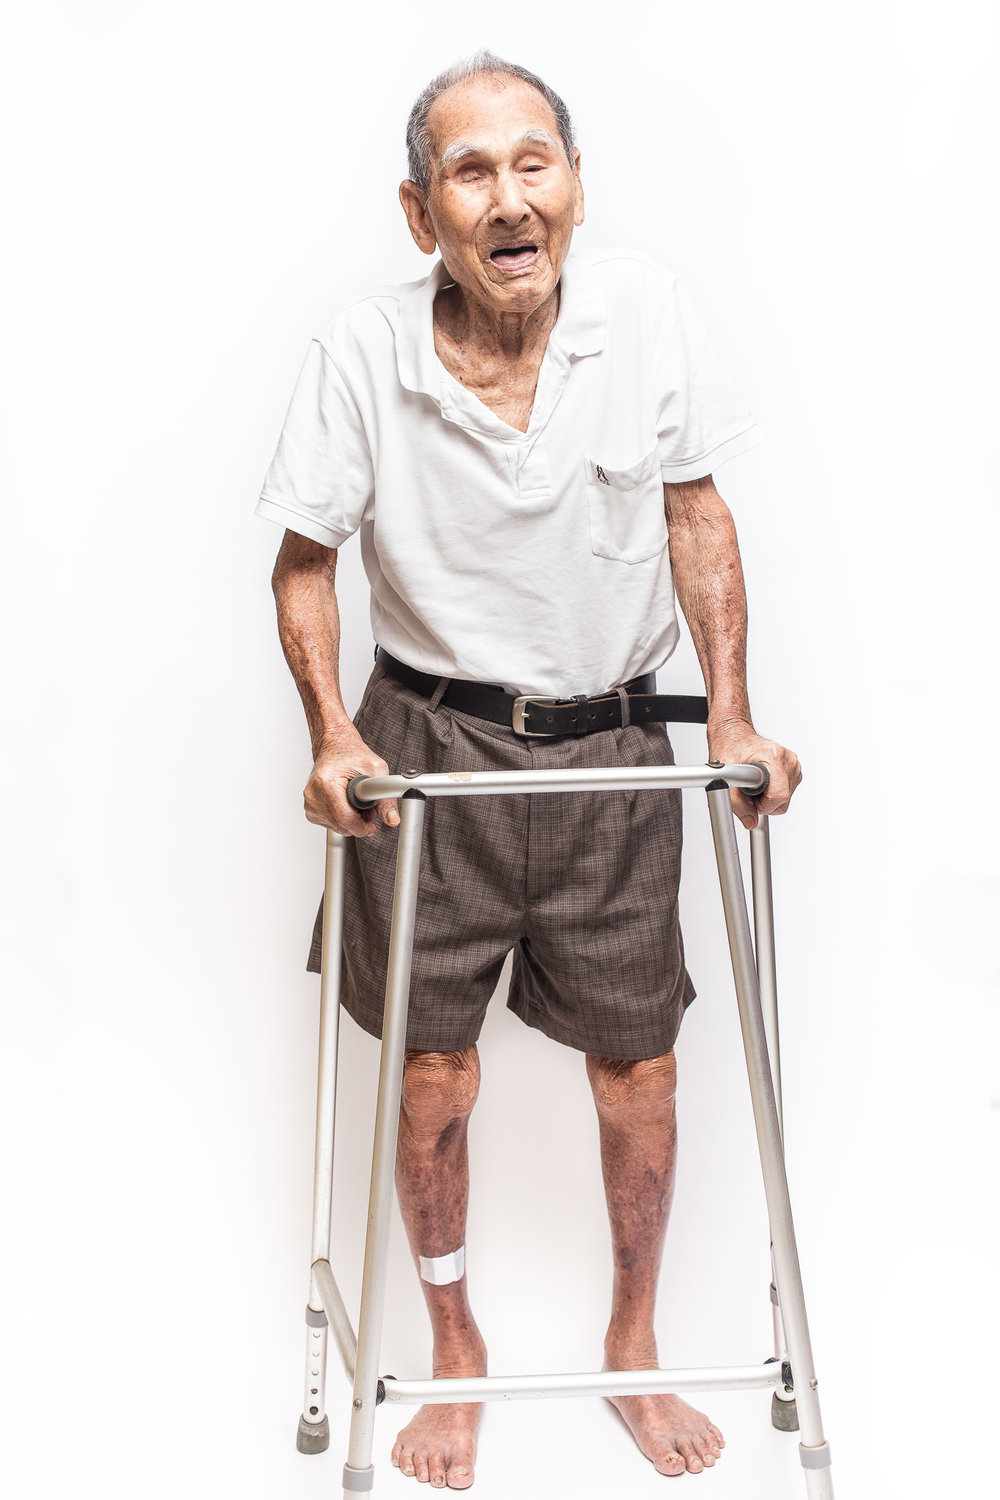 zainal-zainal-studio-centenarians-care-duke-nus-singapore-photographer-12.jpg